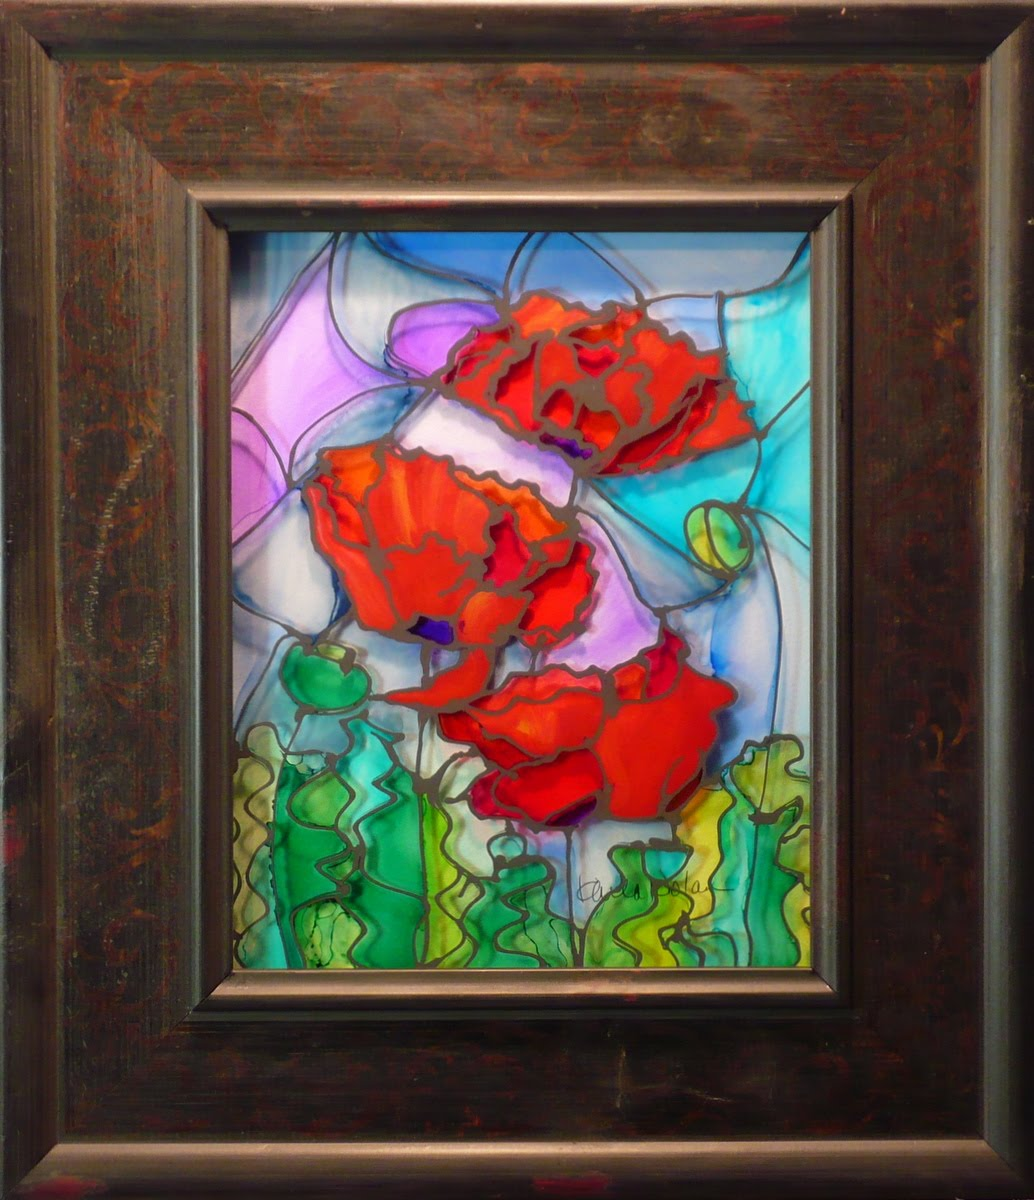 Karla nolan fine art winning threesome by karla nolan framed glass painting for Pictures painted on glass